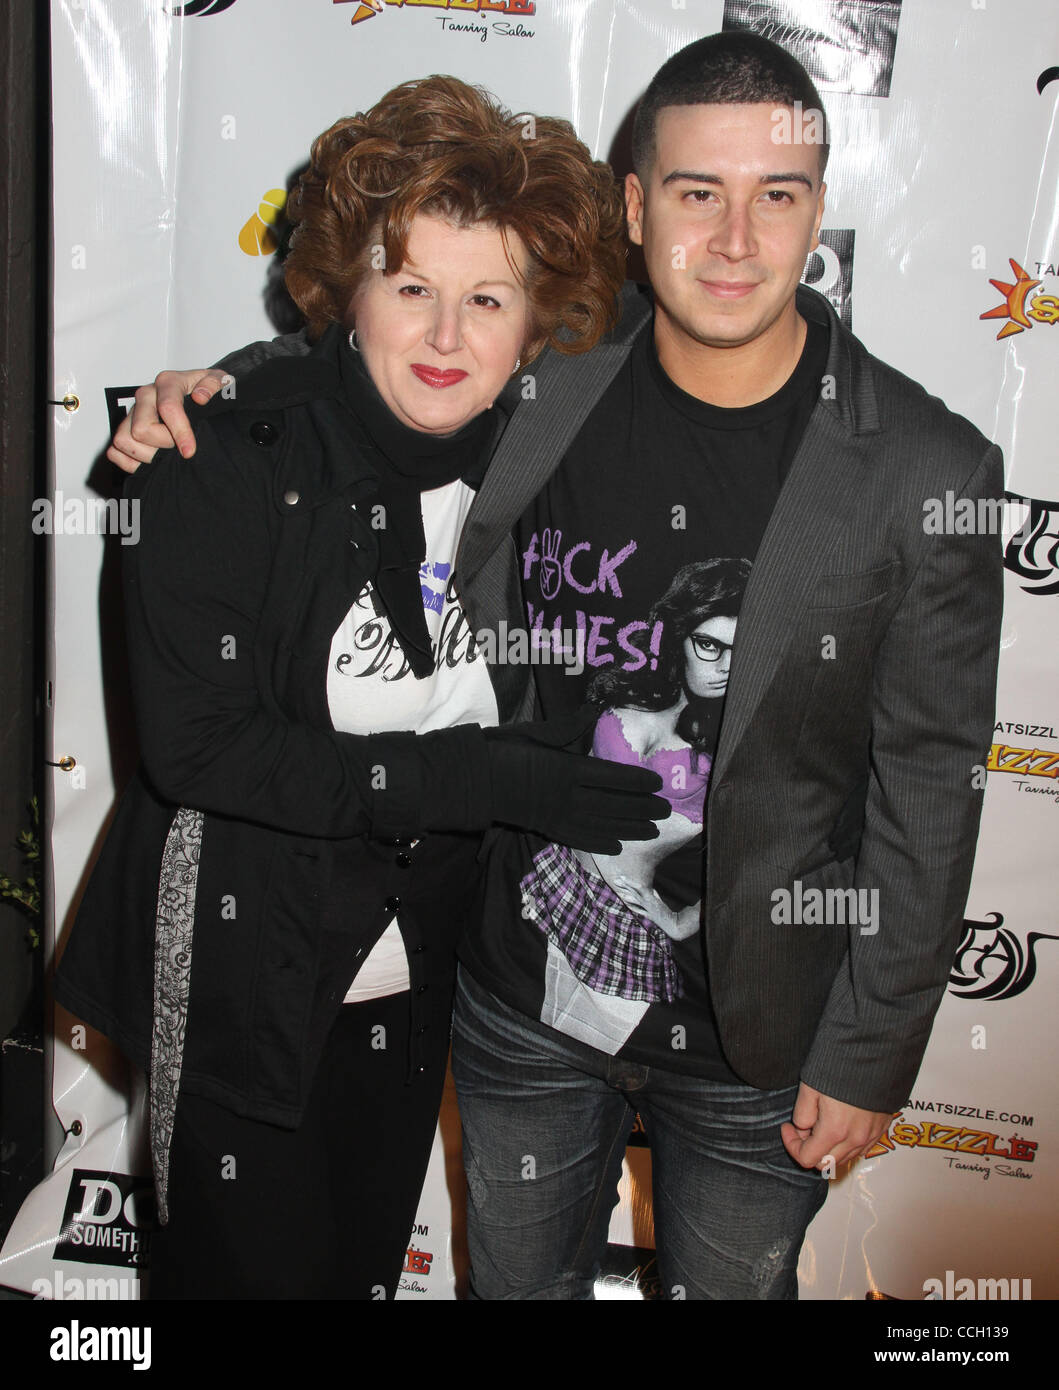 44366dd61ef3 Vinny Guadagnino And His Mother Stock Photos   Vinny Guadagnino And ...